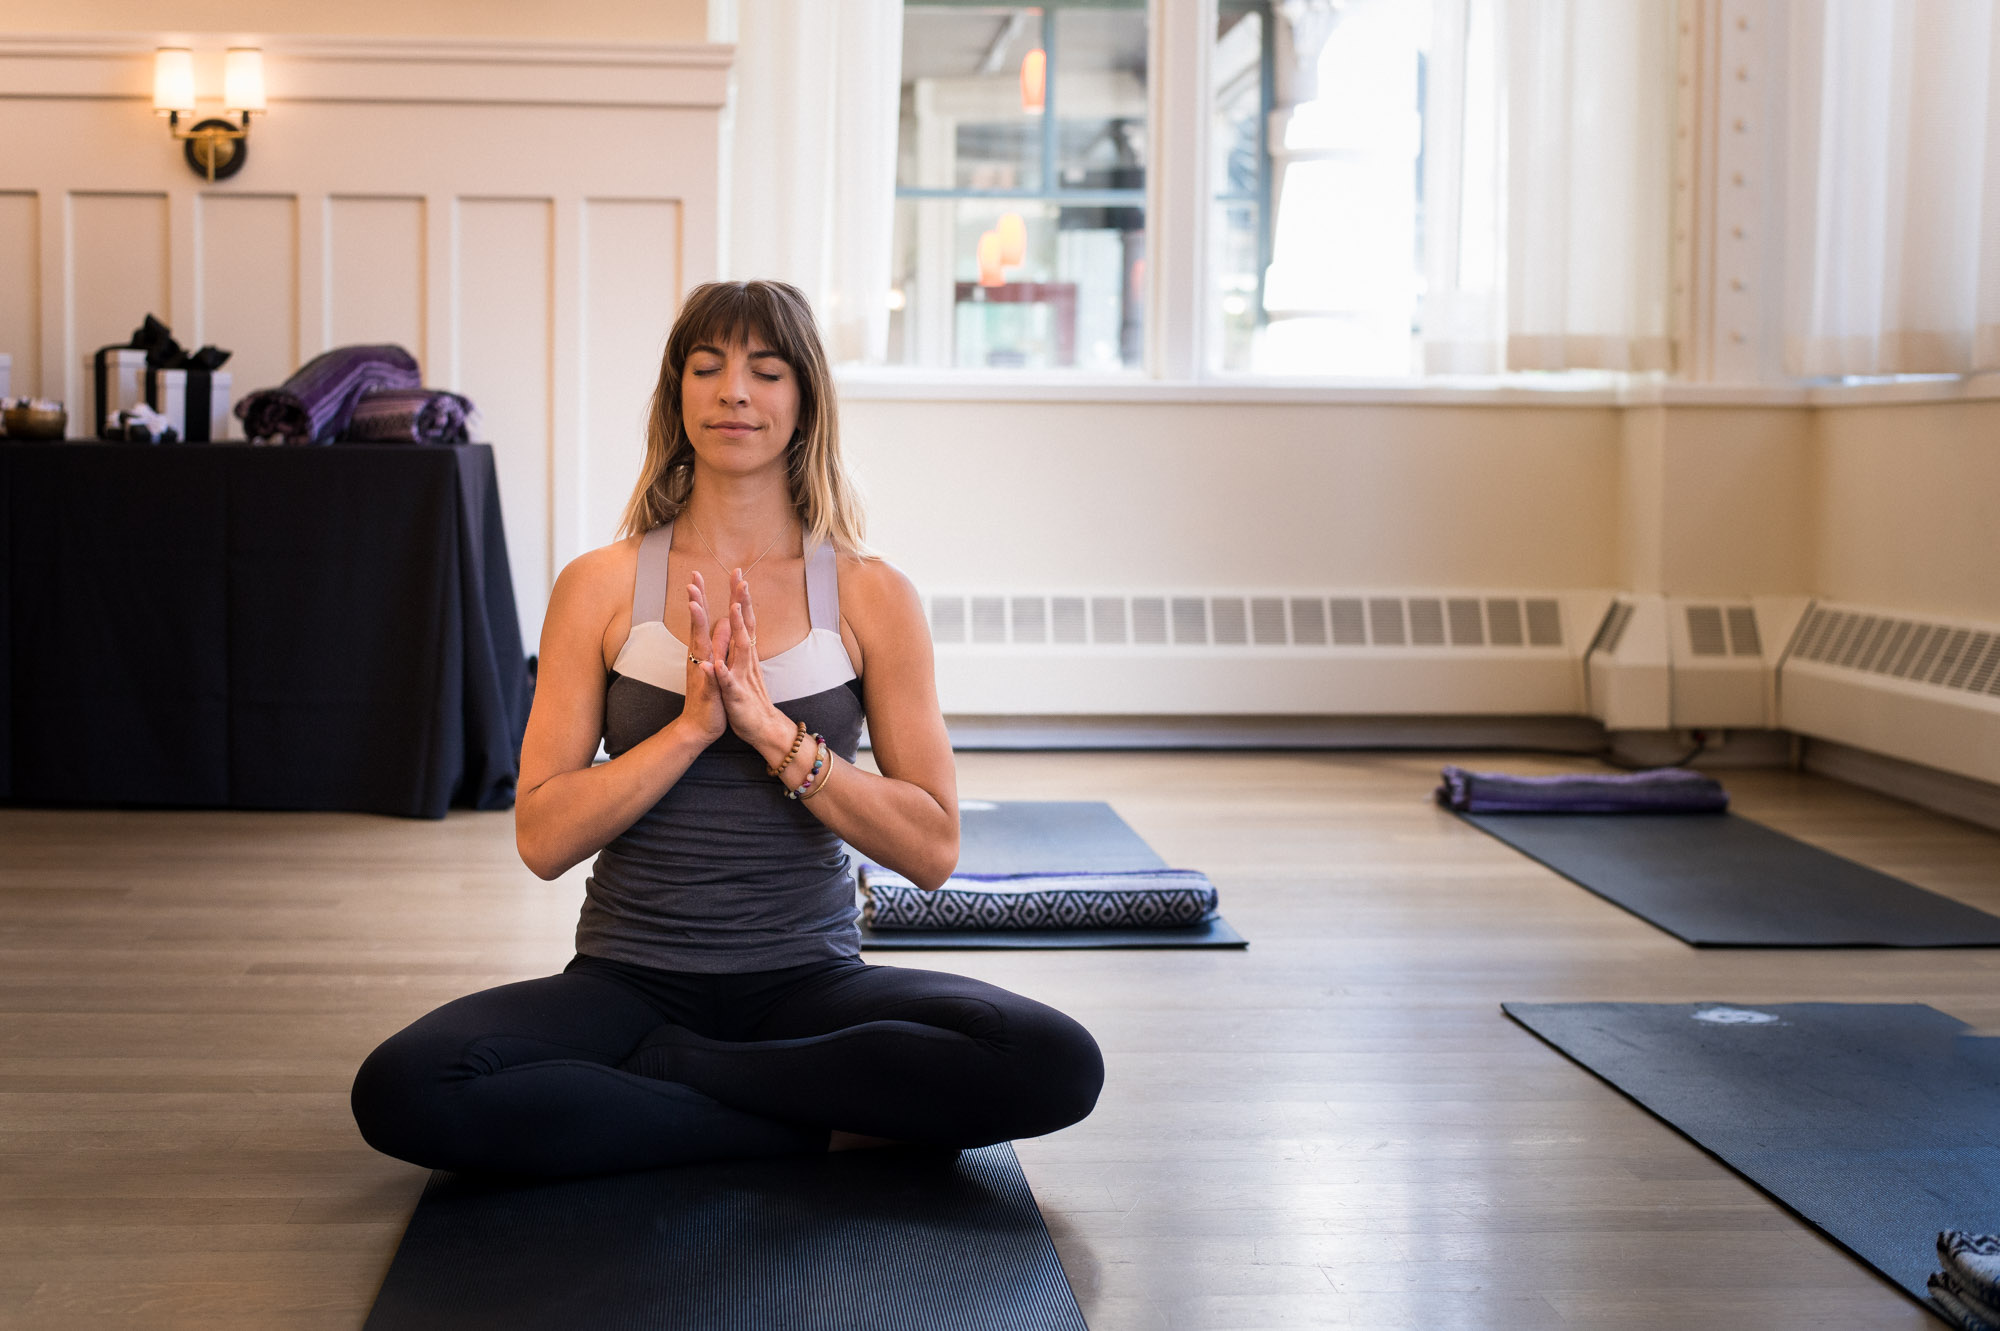 Women's Lifestyle Blog highlighting self-care through yoga